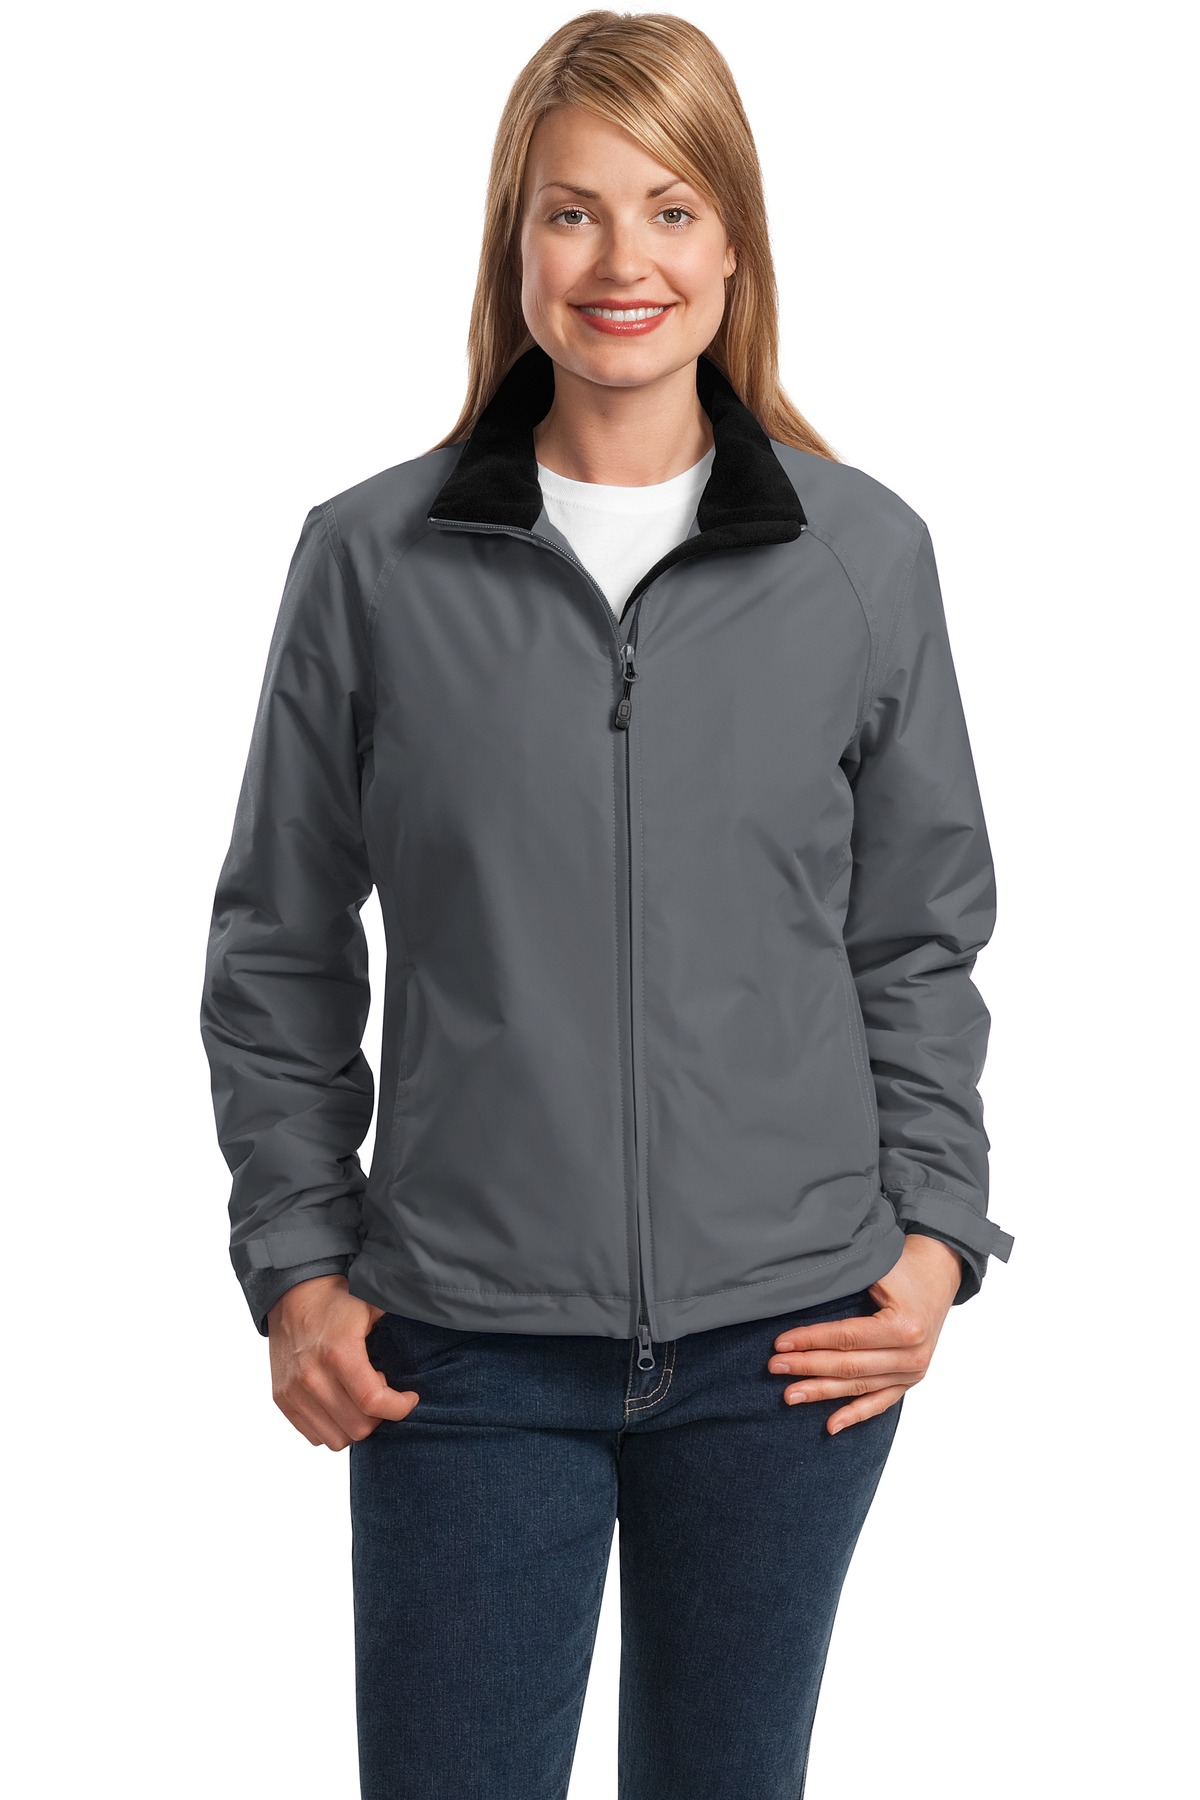 Outerwear-Corporate-Jackets-30